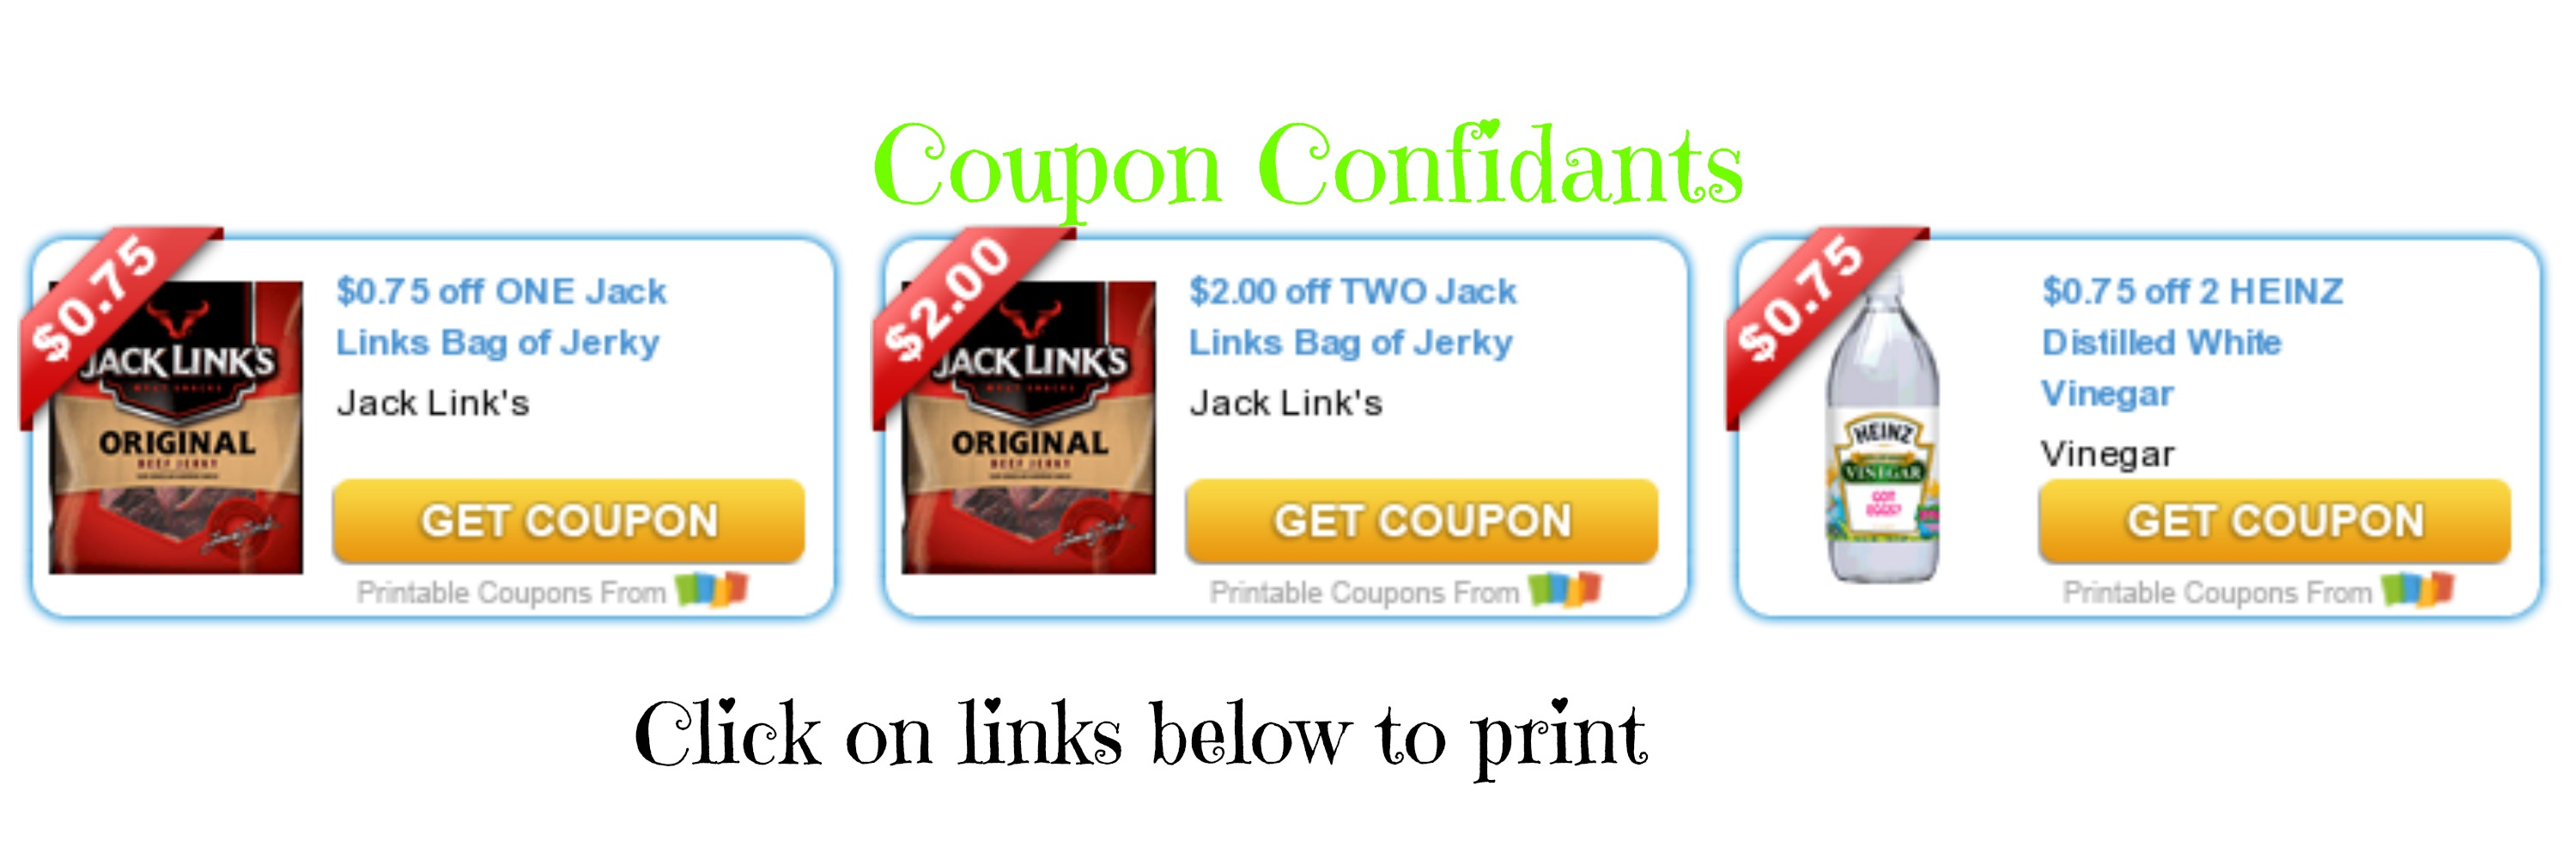 image regarding Bounty Printable Coupons referred to as bounty Archives ⋆ Web site 2 of 3 ⋆ Coupon Confidants